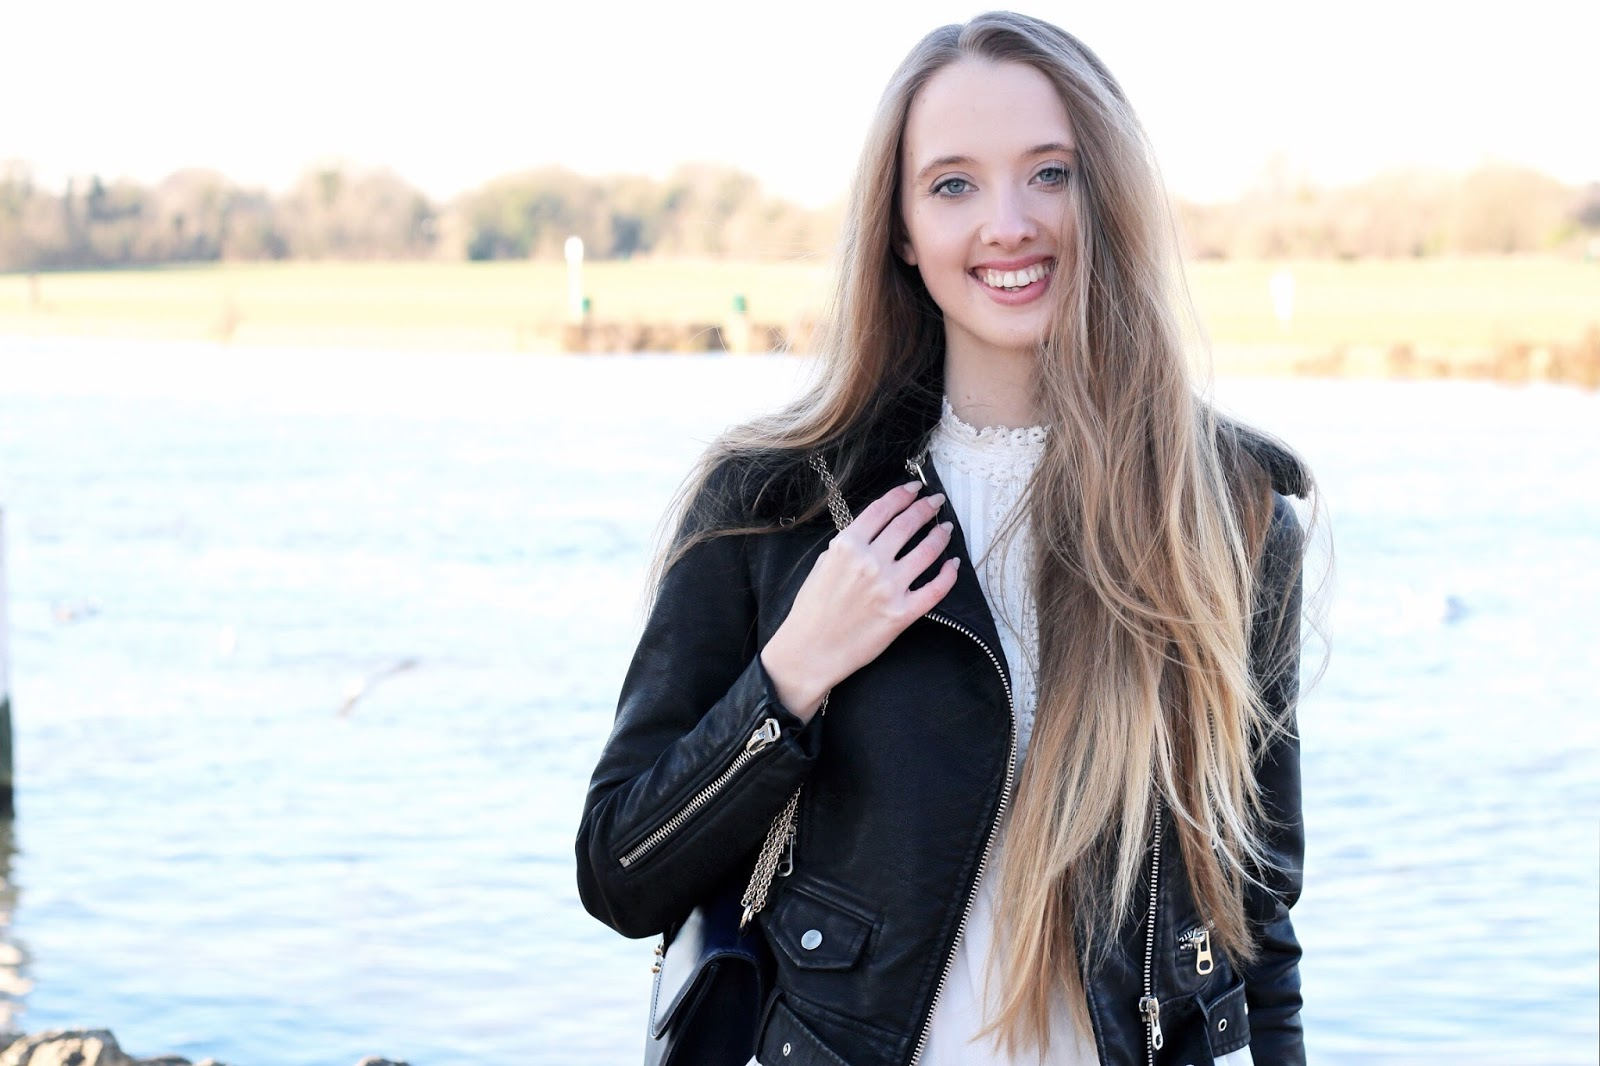 Styling a leather jacket in winter